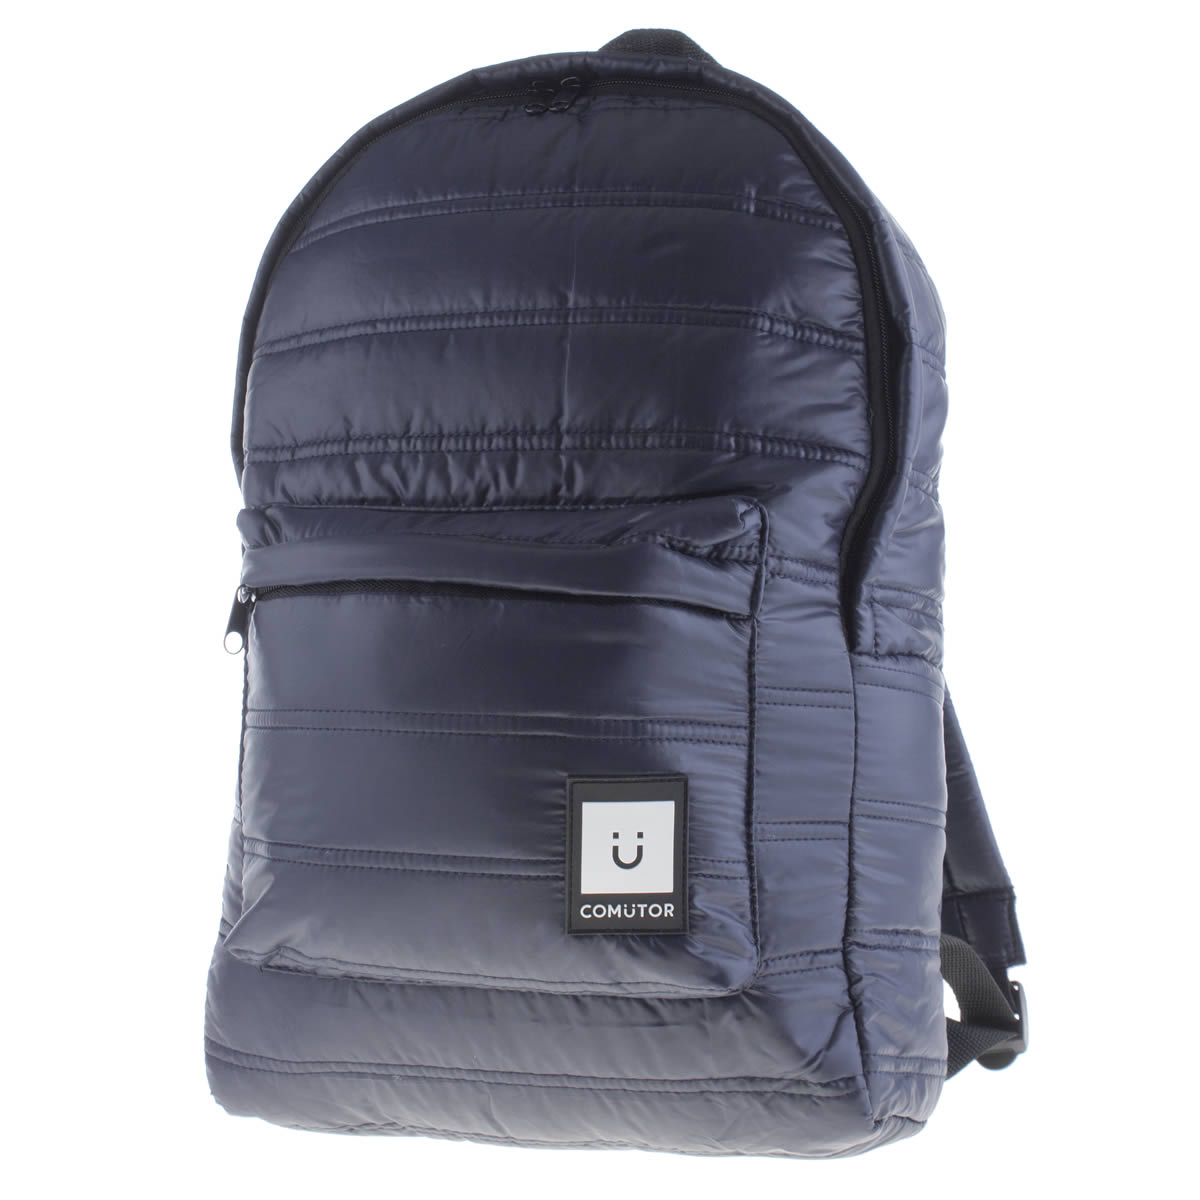 comutor Comutor Navy 12 Hour Backpack Bags